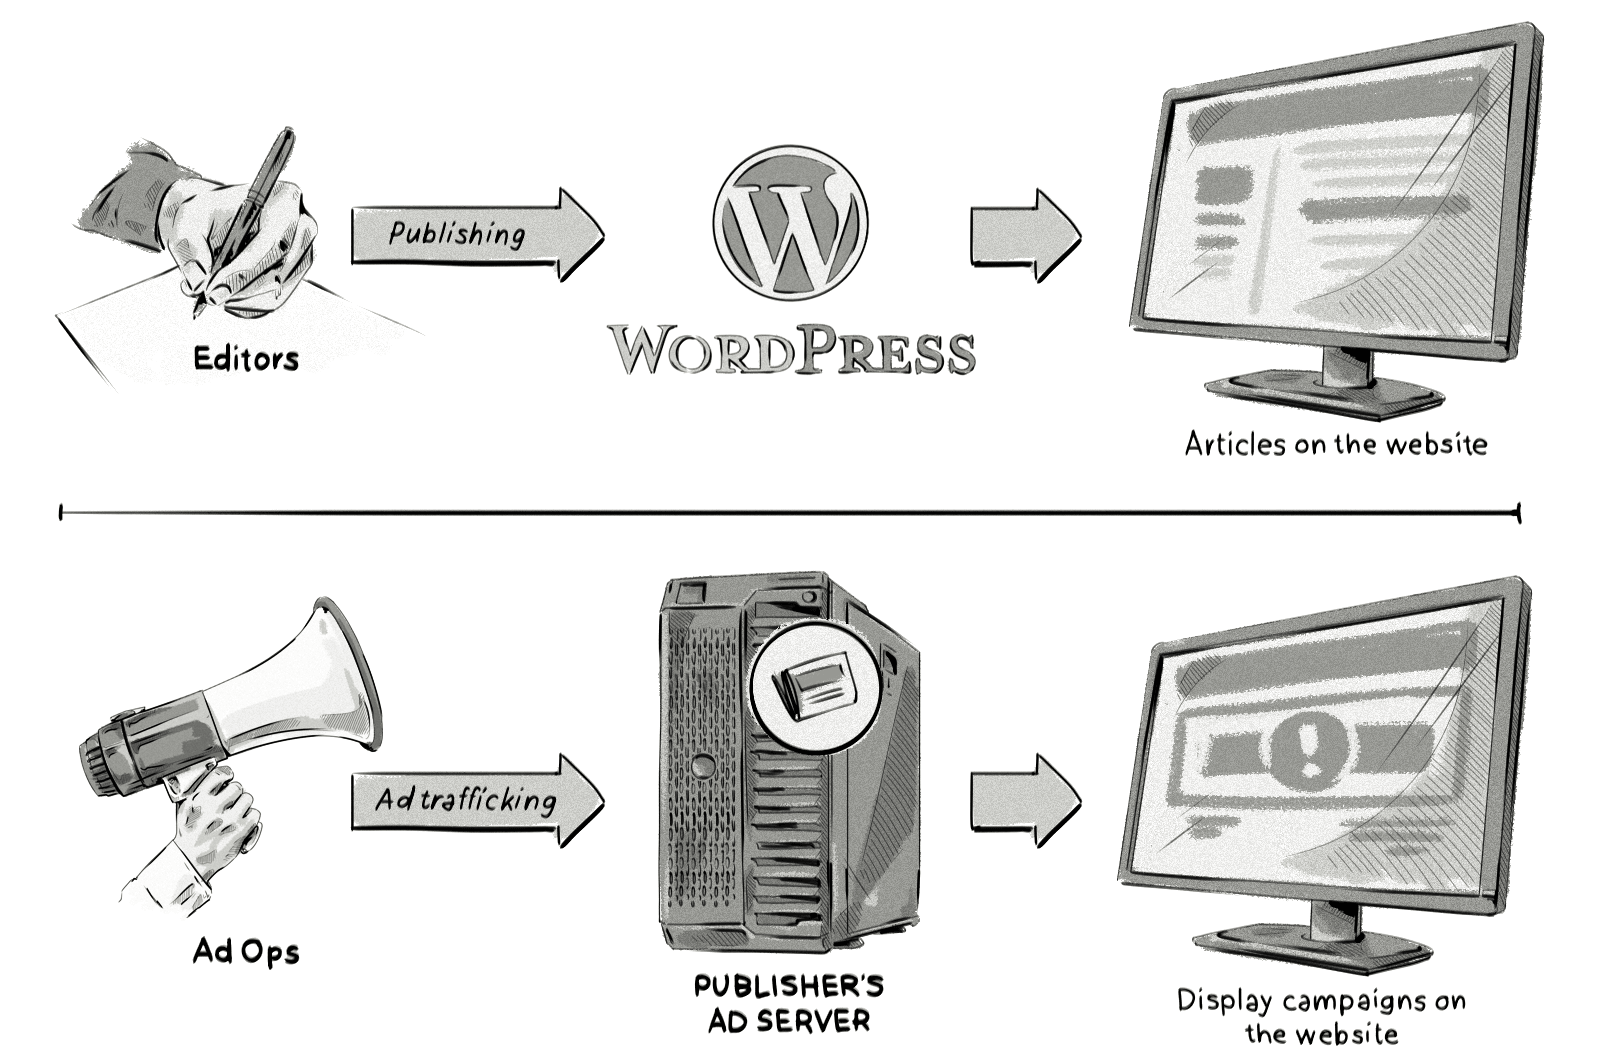 An ad server is to ads what WordPress is to content